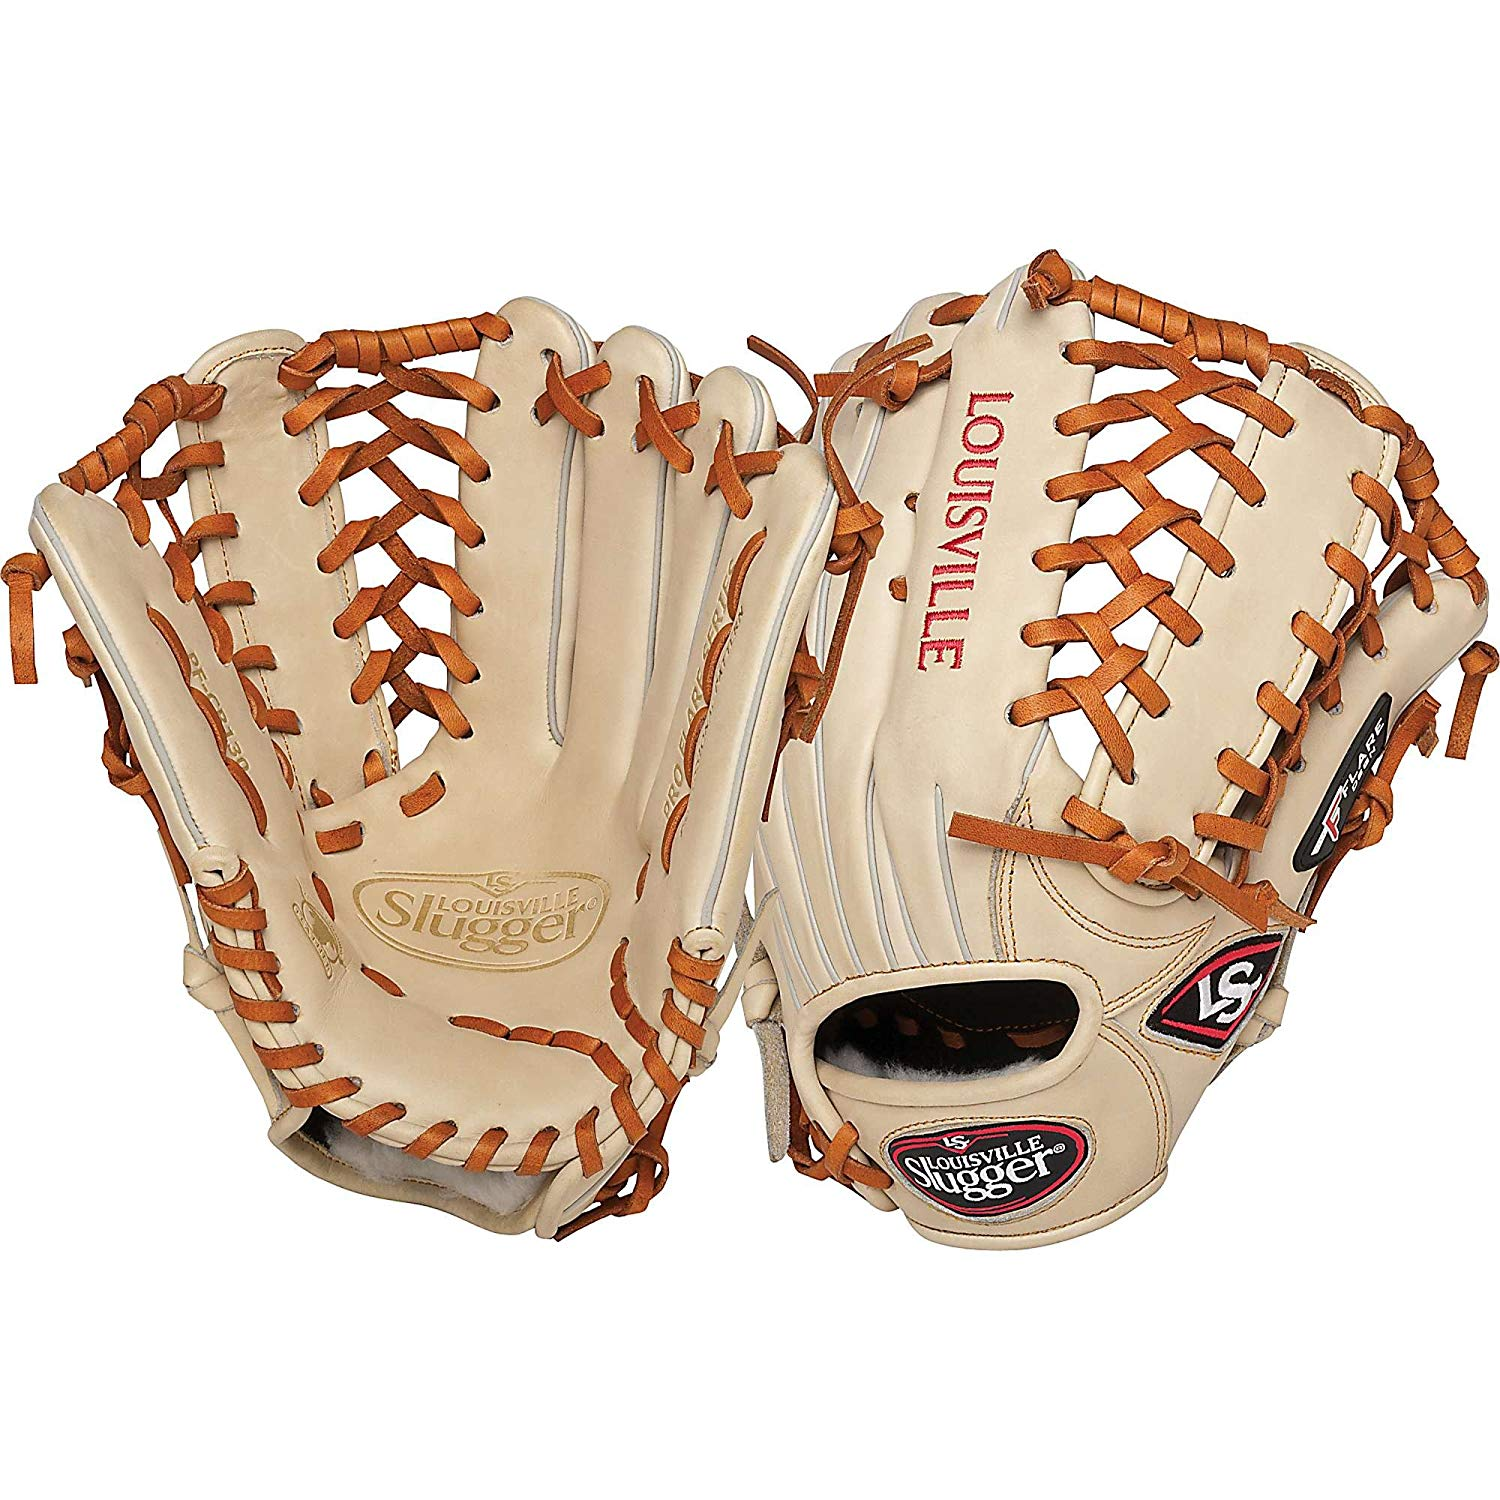 louisville-slugger-pro-flare-cream-13-inch-outfield-baseball-glove-left-handed-throw FGPF14-CR130-Left Handed Throw Louisville 044277019433 Louisville Slugger Pro Flare Cream 13 inch Outfield Baseball Glove Left